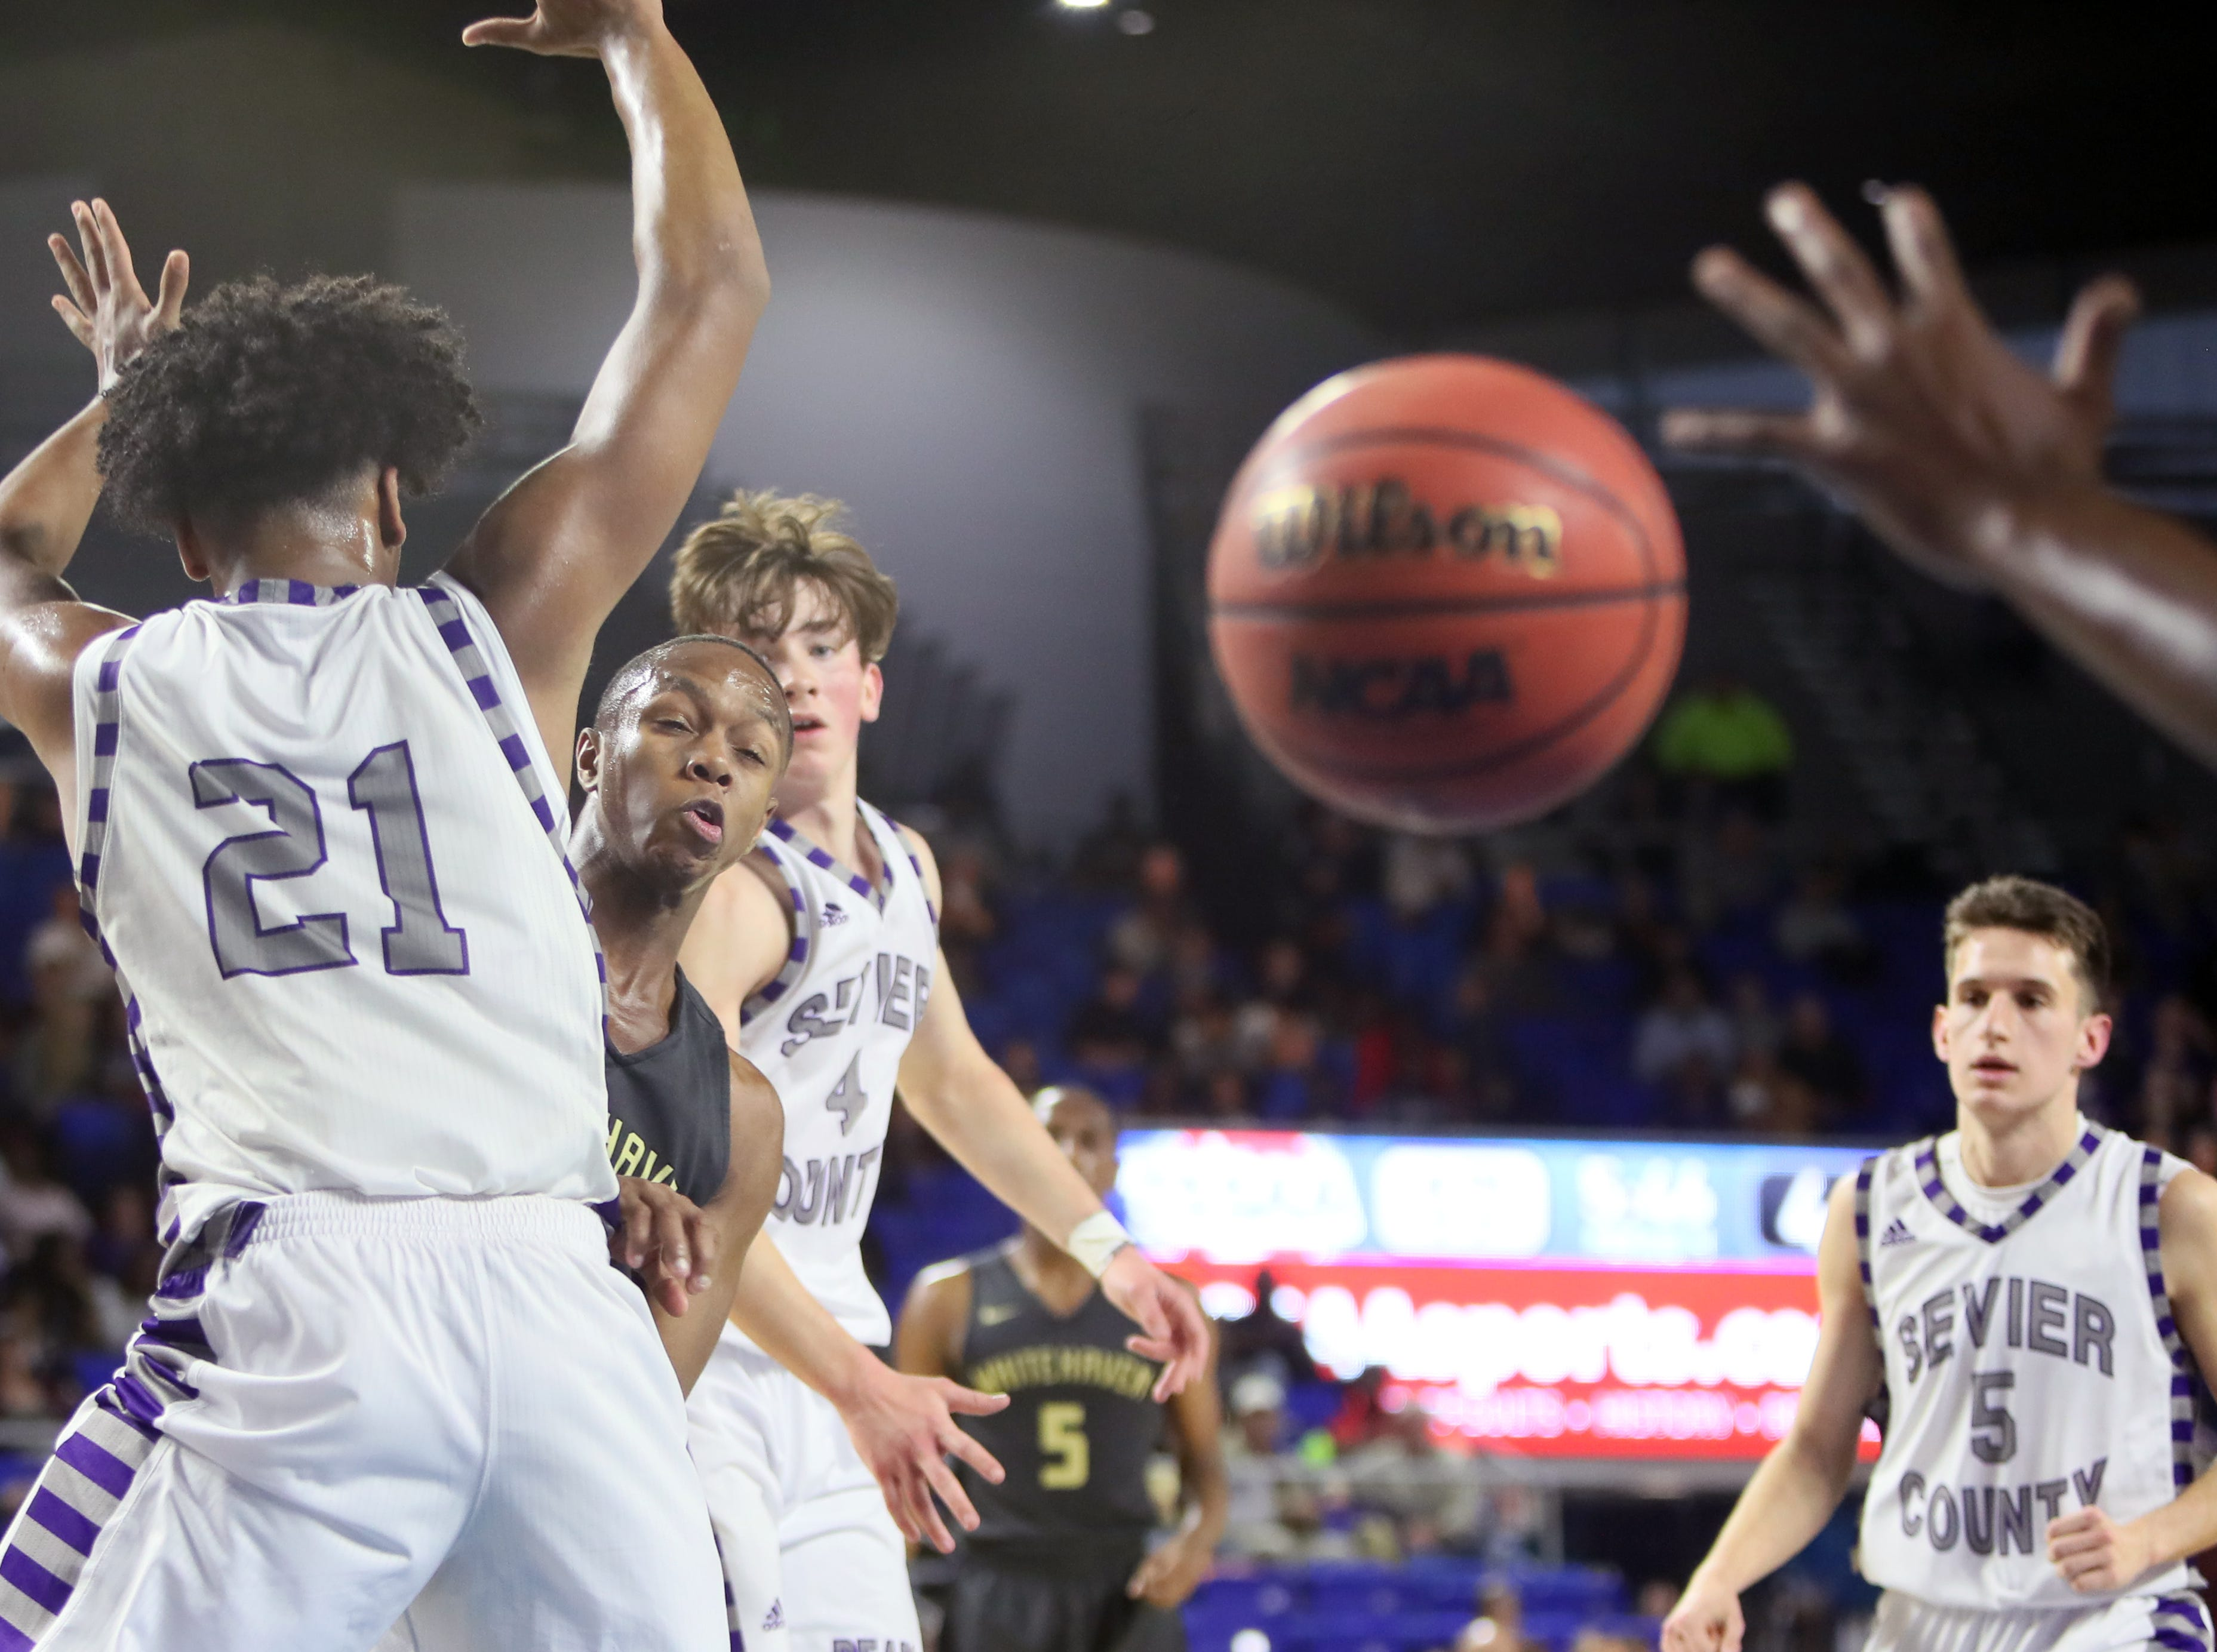 Whitehaven's Antwarn Smith watches as his pass hits a teammate's hand as they take on Sevier County during the TSSAA Division I basketball state tournament at the Murphy Center in Murfreesboro, Tenn. on Wednesday, March 13, 2019.